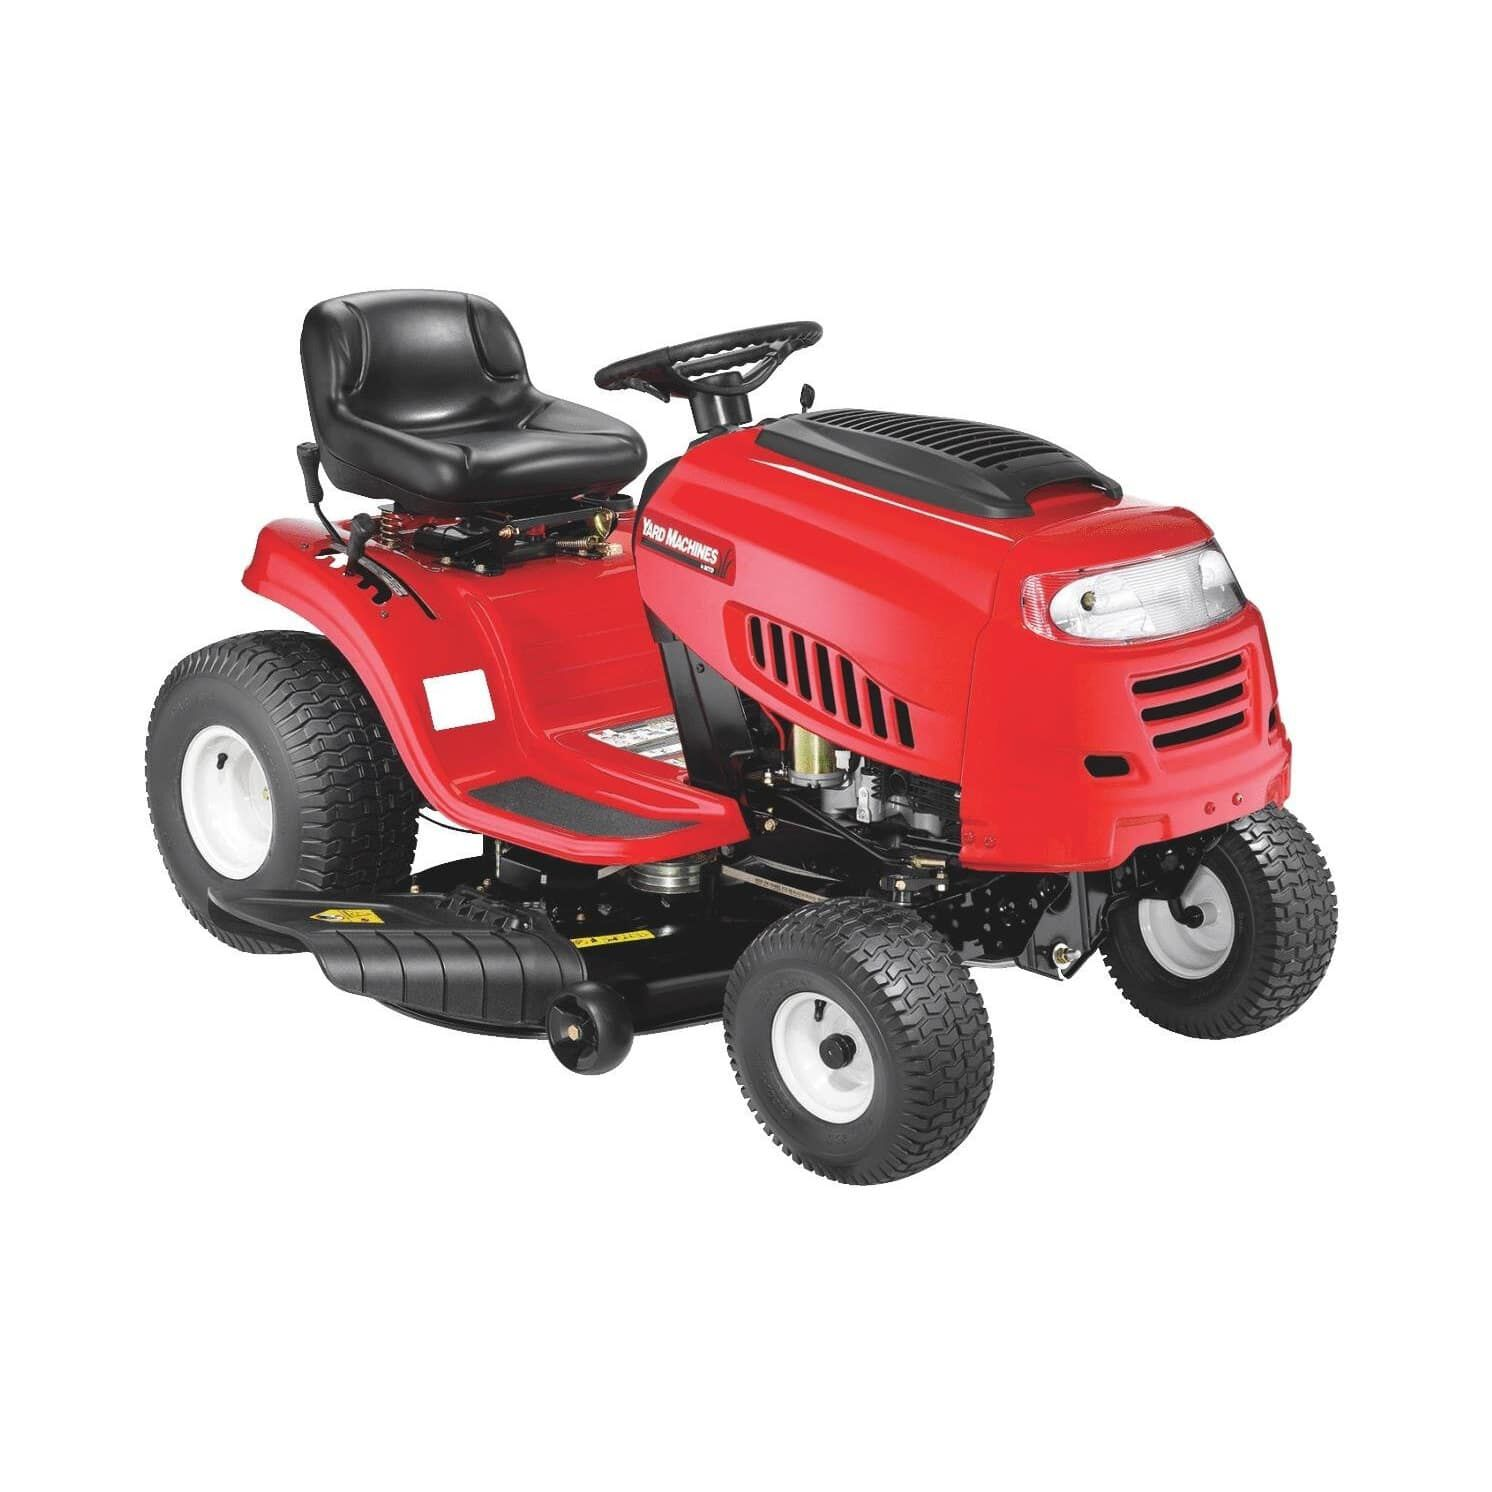 medium resolution of yard machines outdoor power 42 420cc riding lawn mower with 7 speed manual transmission